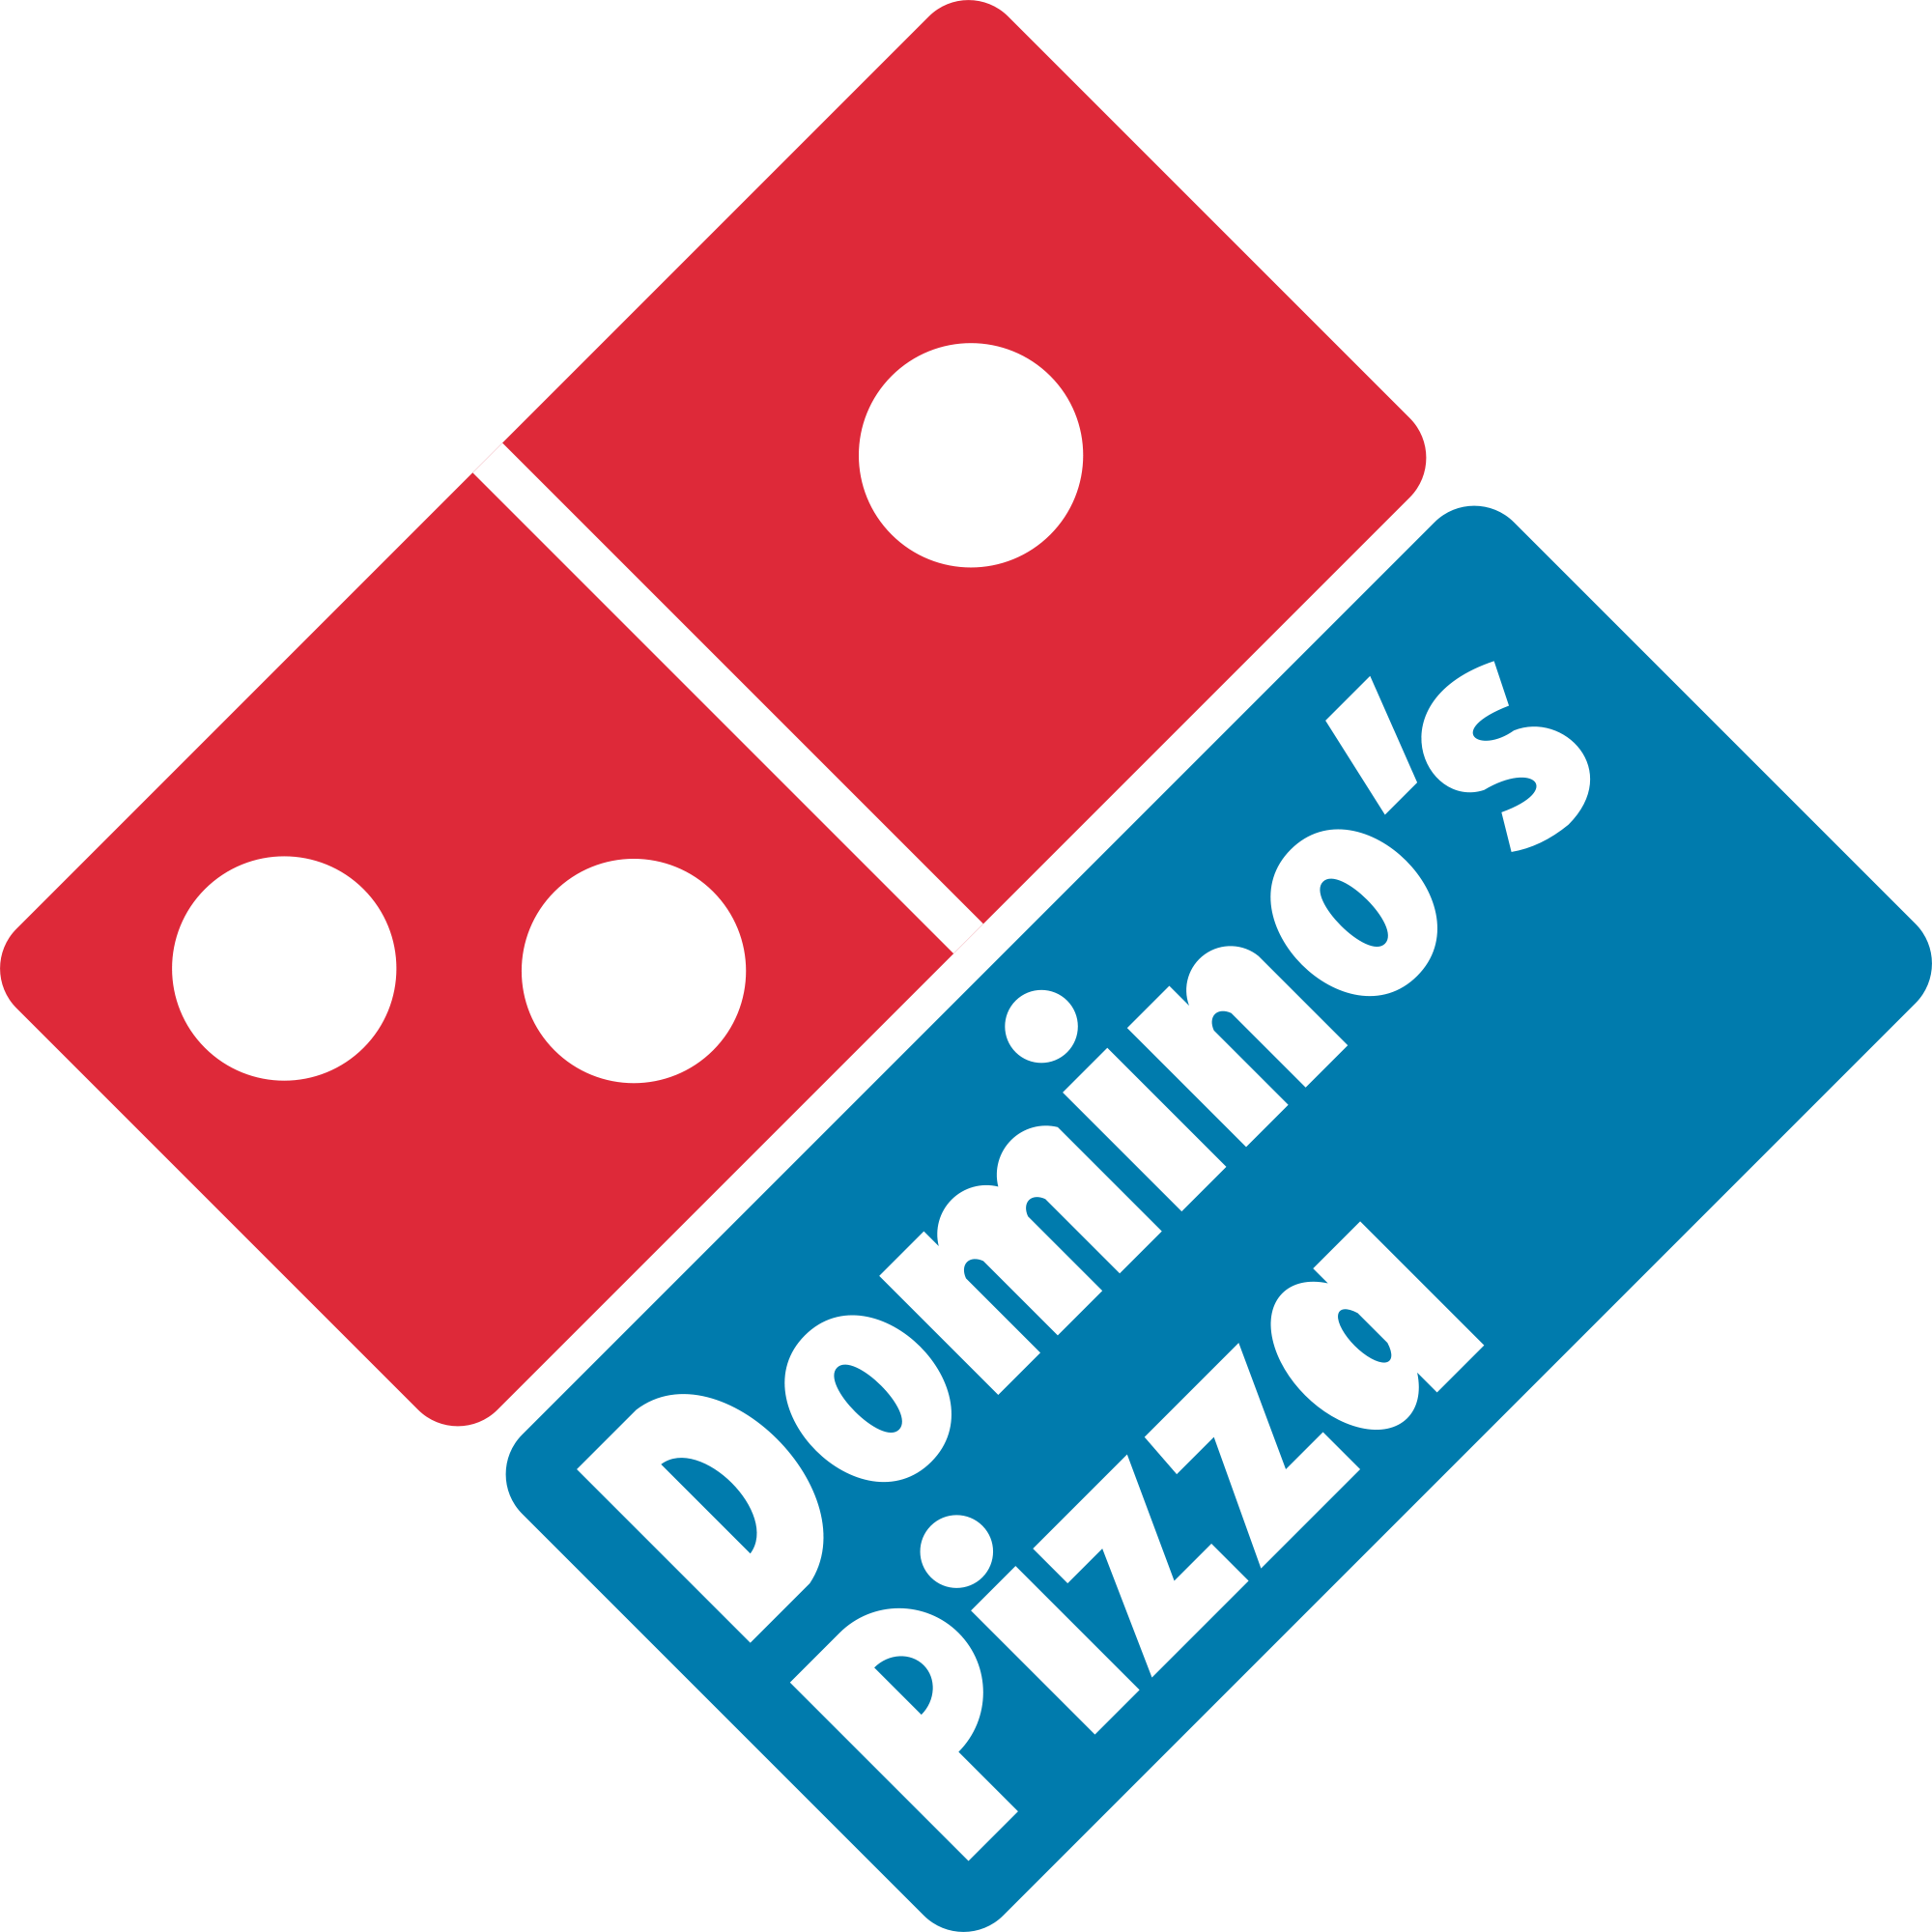 Starting Domino's Pizza Franchise in India